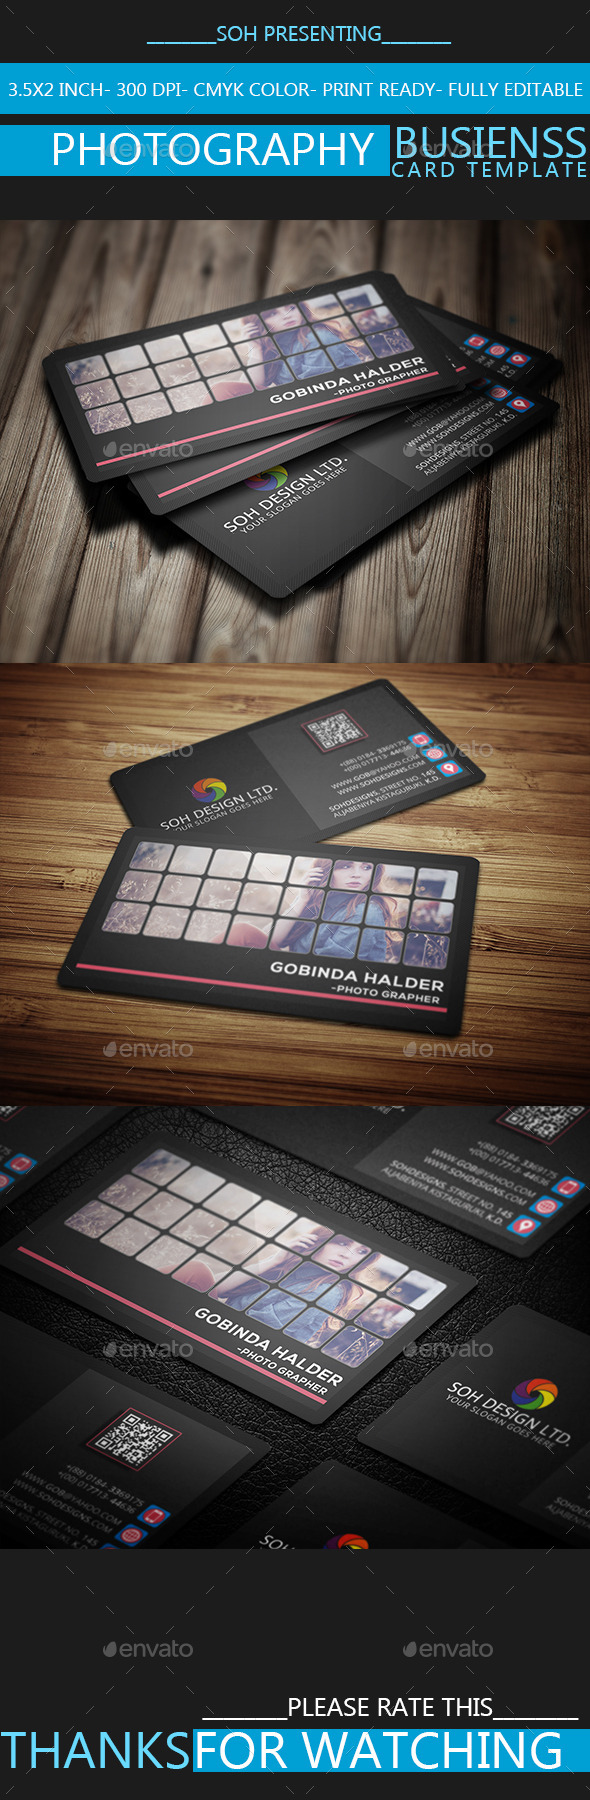 GraphicRiver Photography Business Card Template 9267477